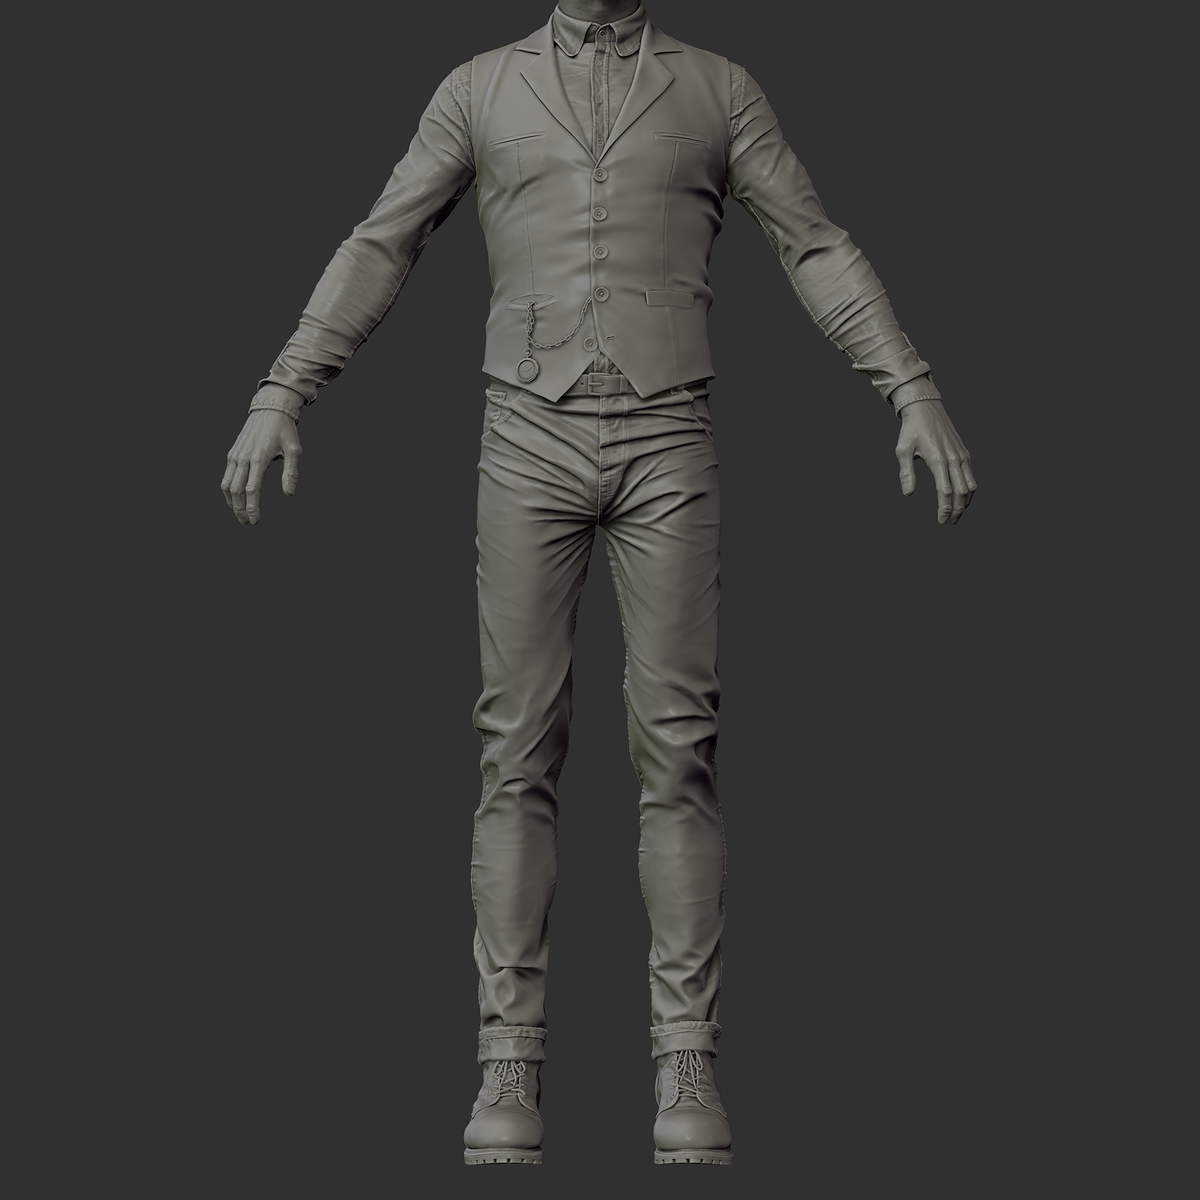 ZBrush Document06